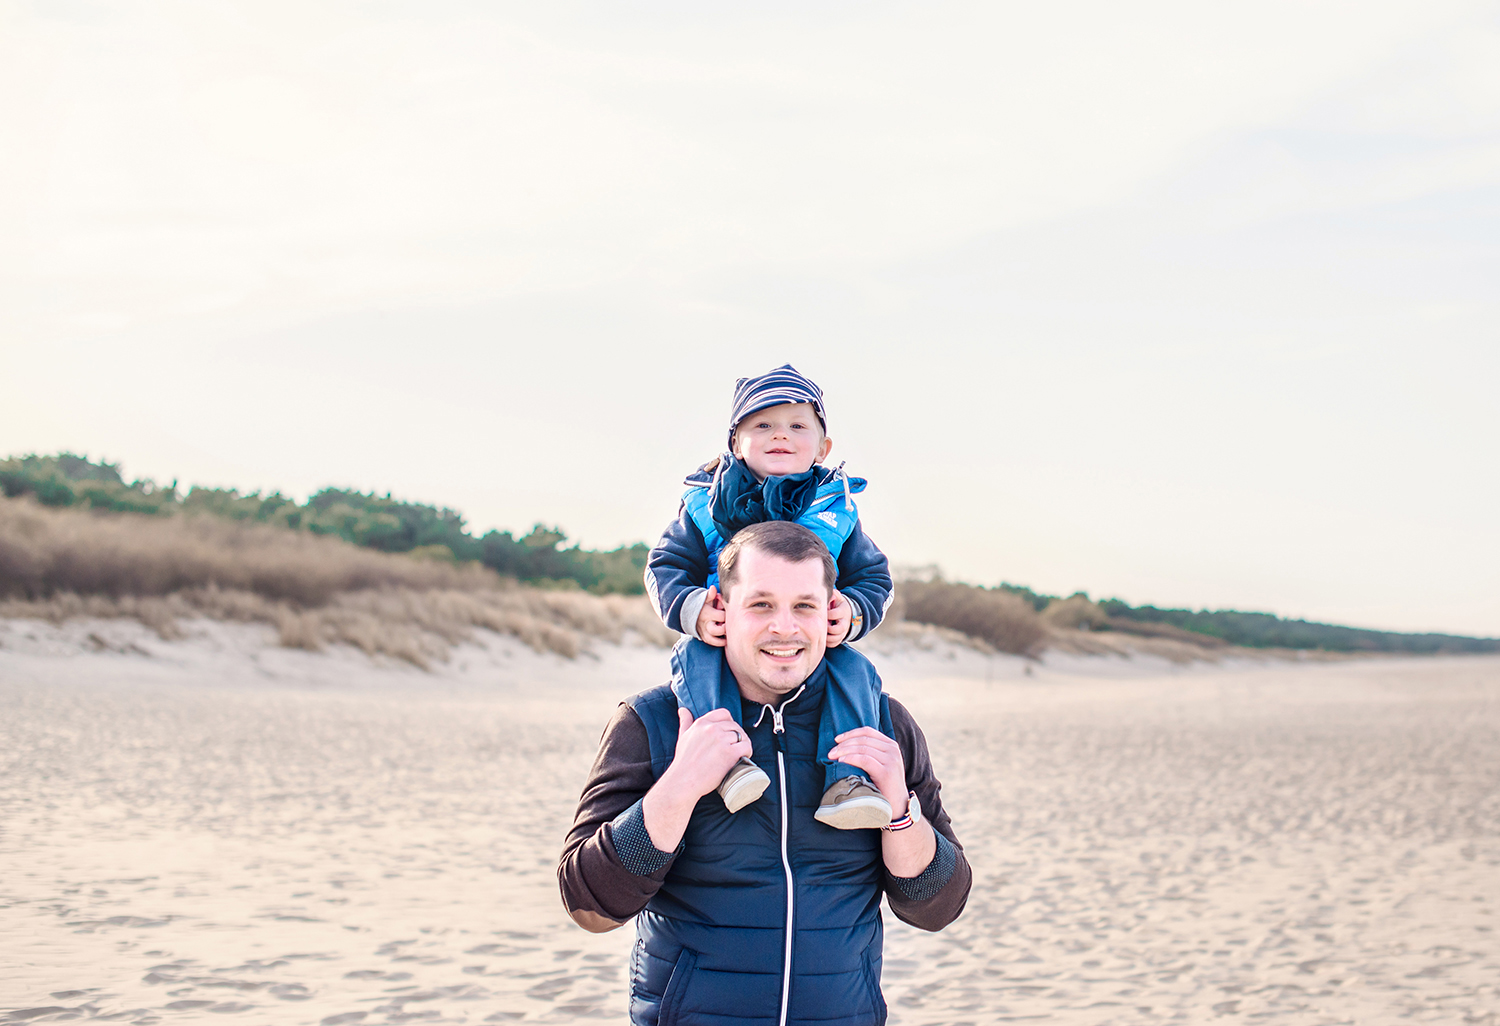 fotoshooting-familie-strand